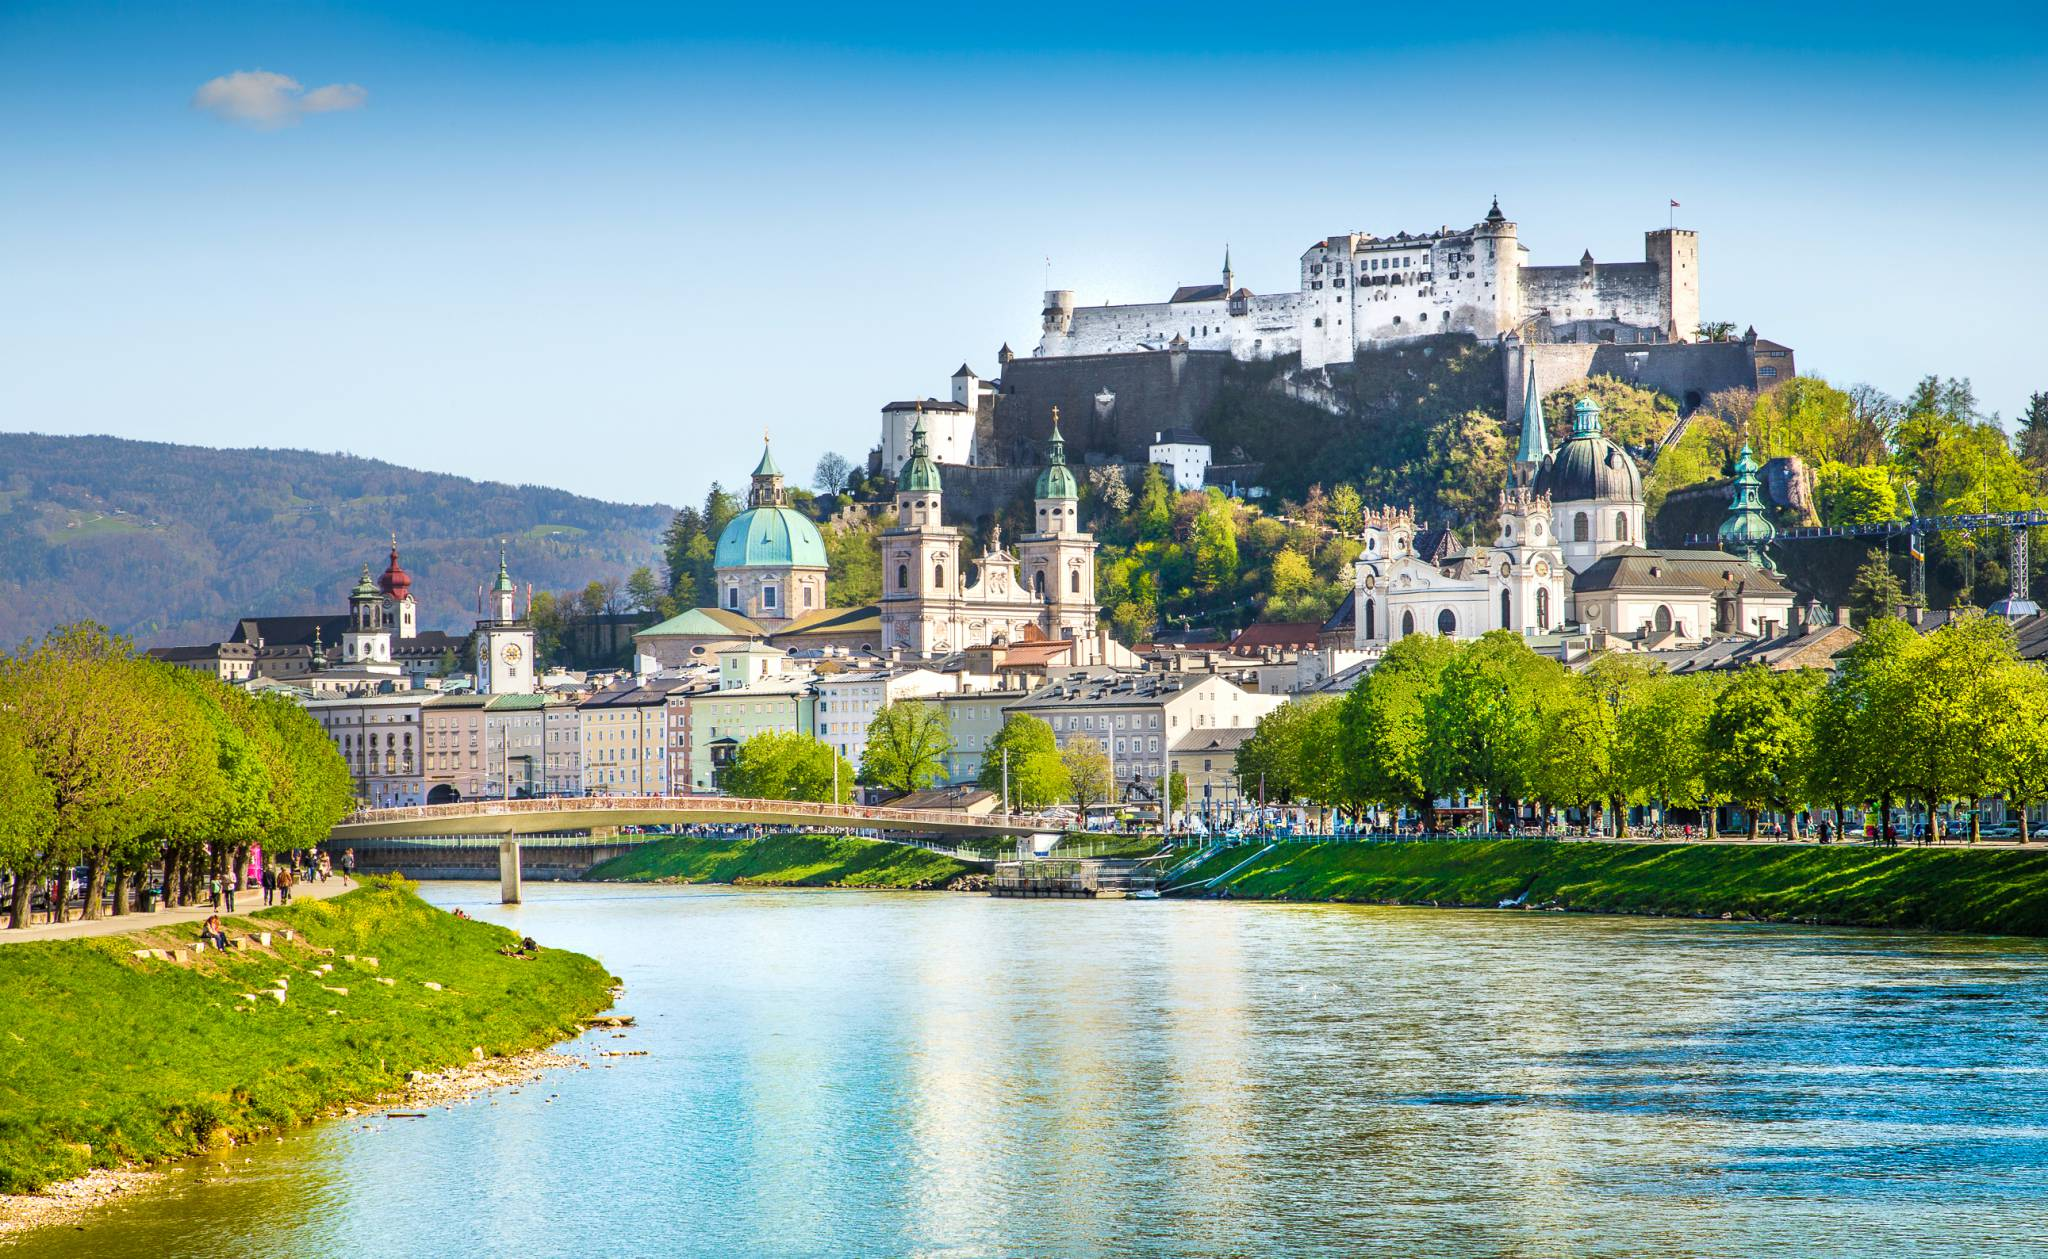 Travel to Salzburg with eTips Travel Guide